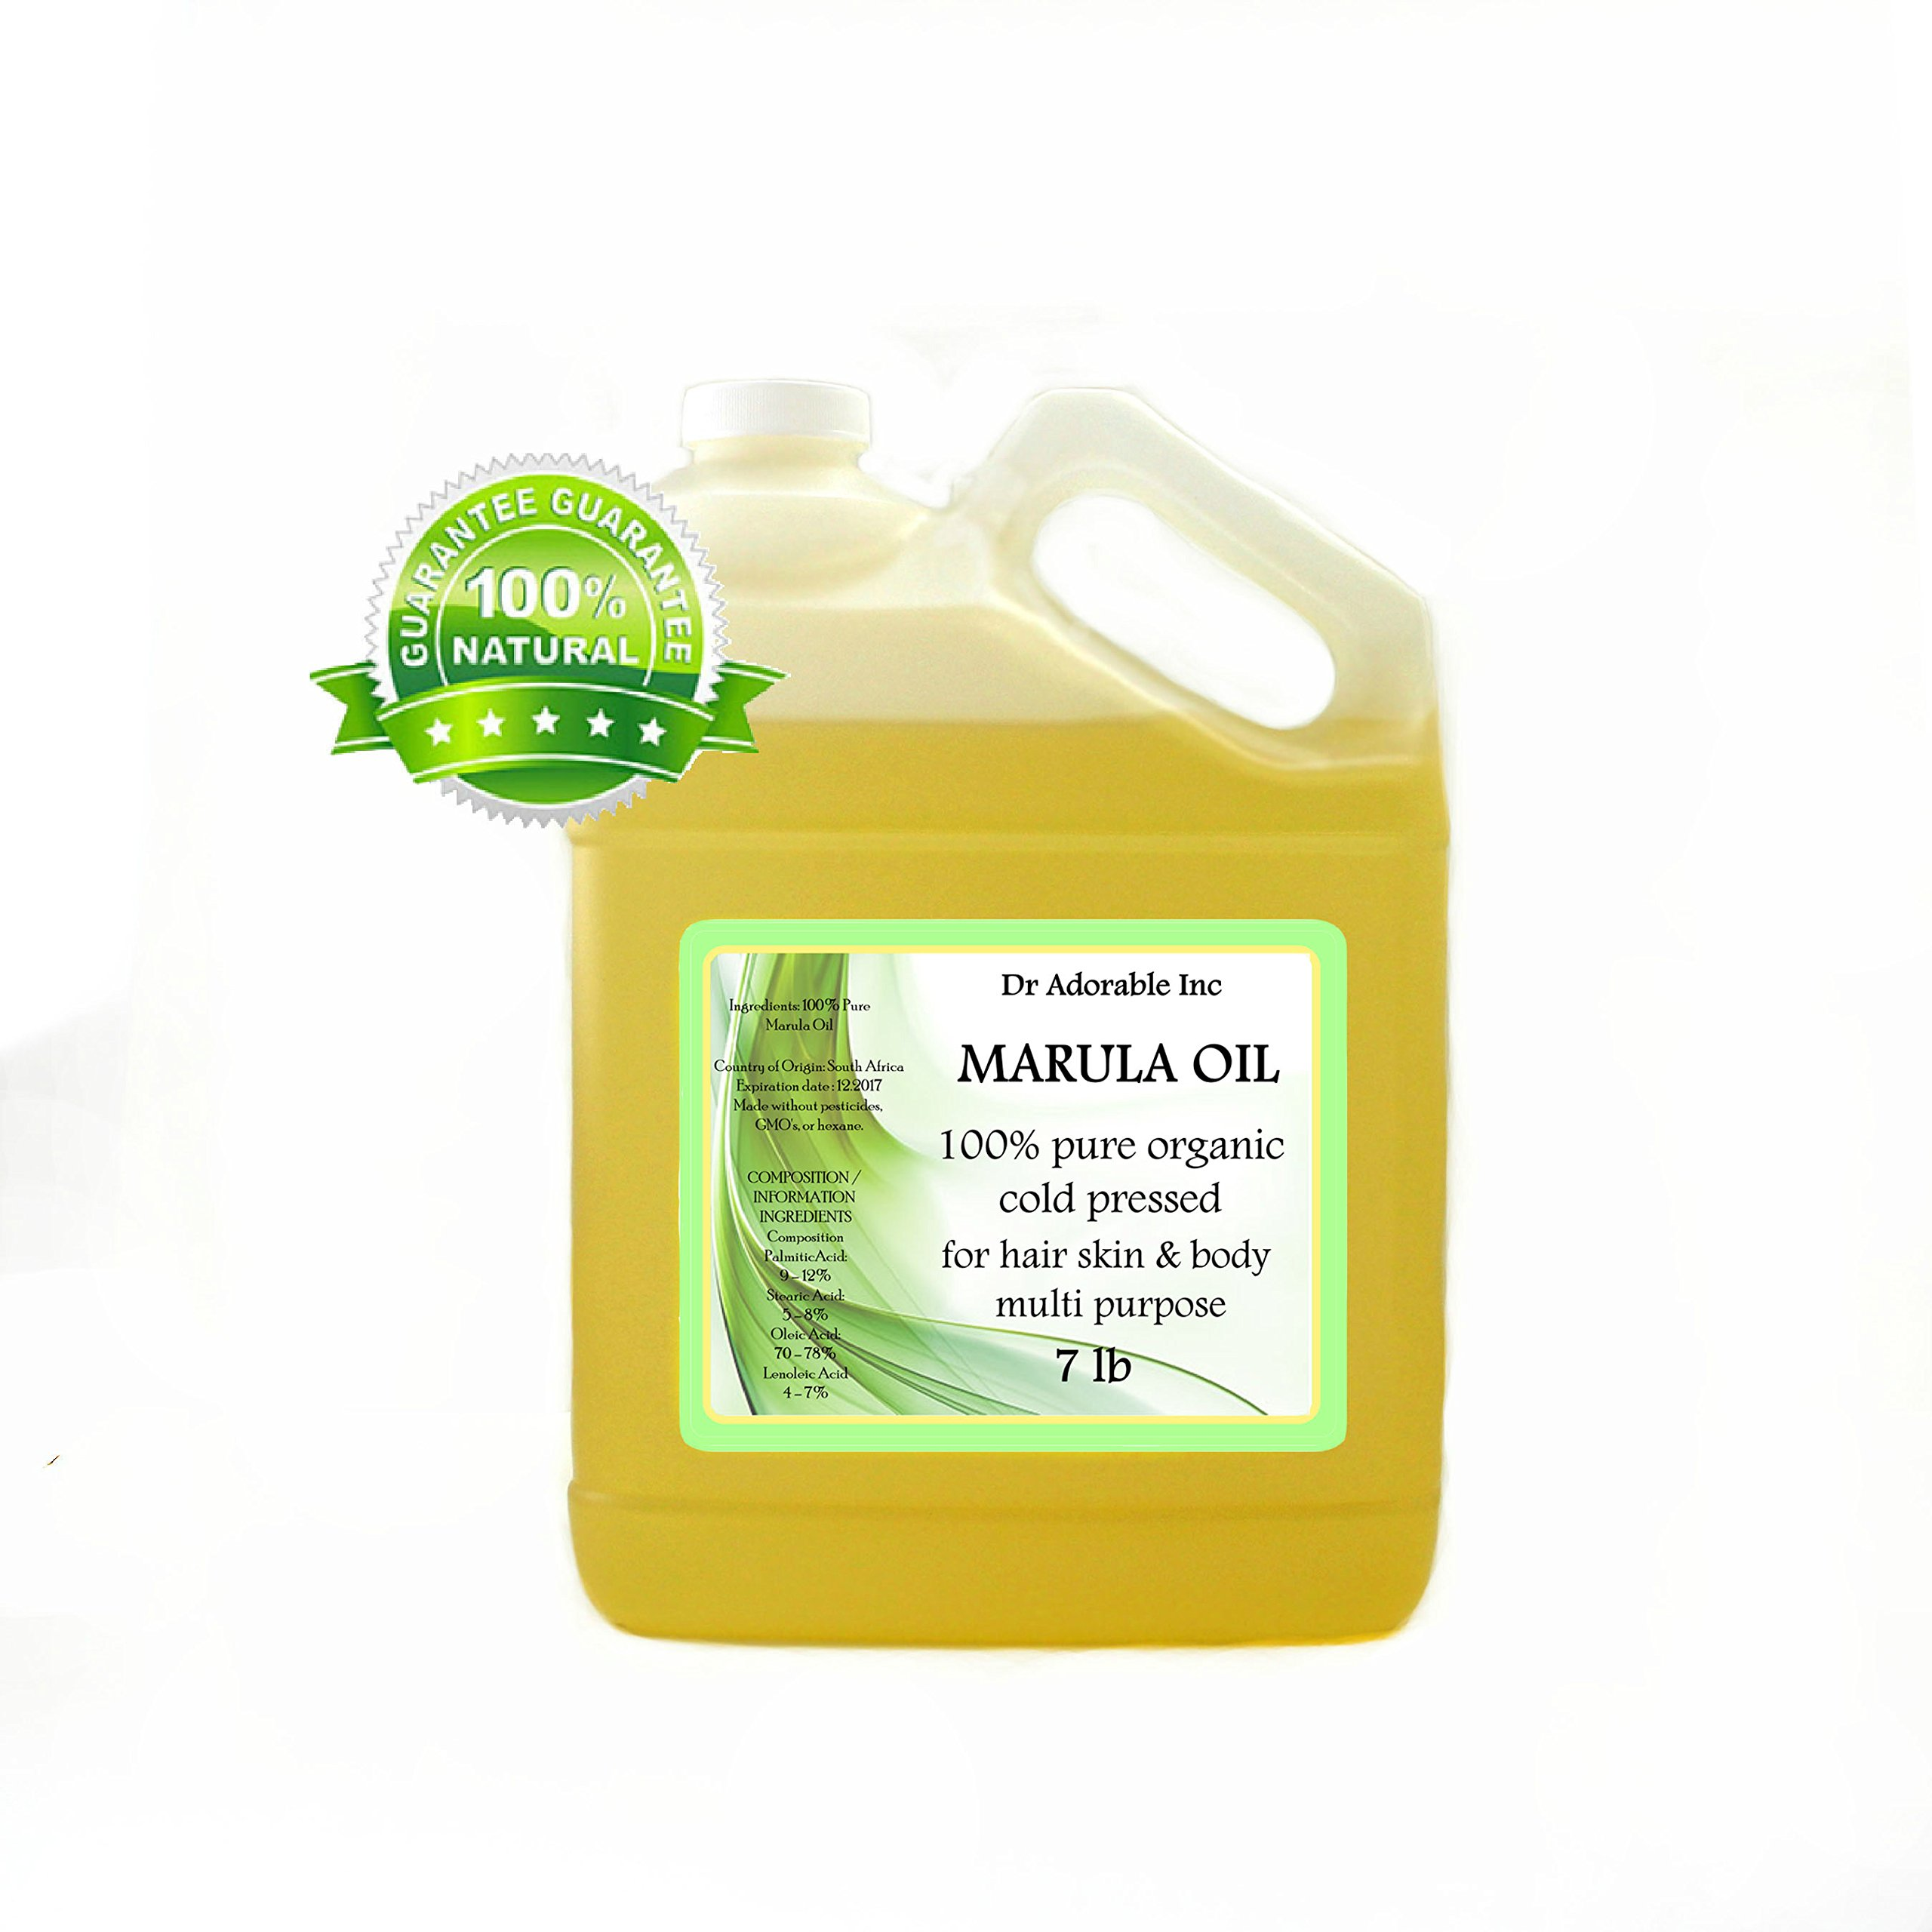 MARULA CARRIER OIL BY DR.ADORABLE 100% PURE ORGANIC COLD PRESSED 128 oz/1 GALLON/7 LB by Dr Adorable